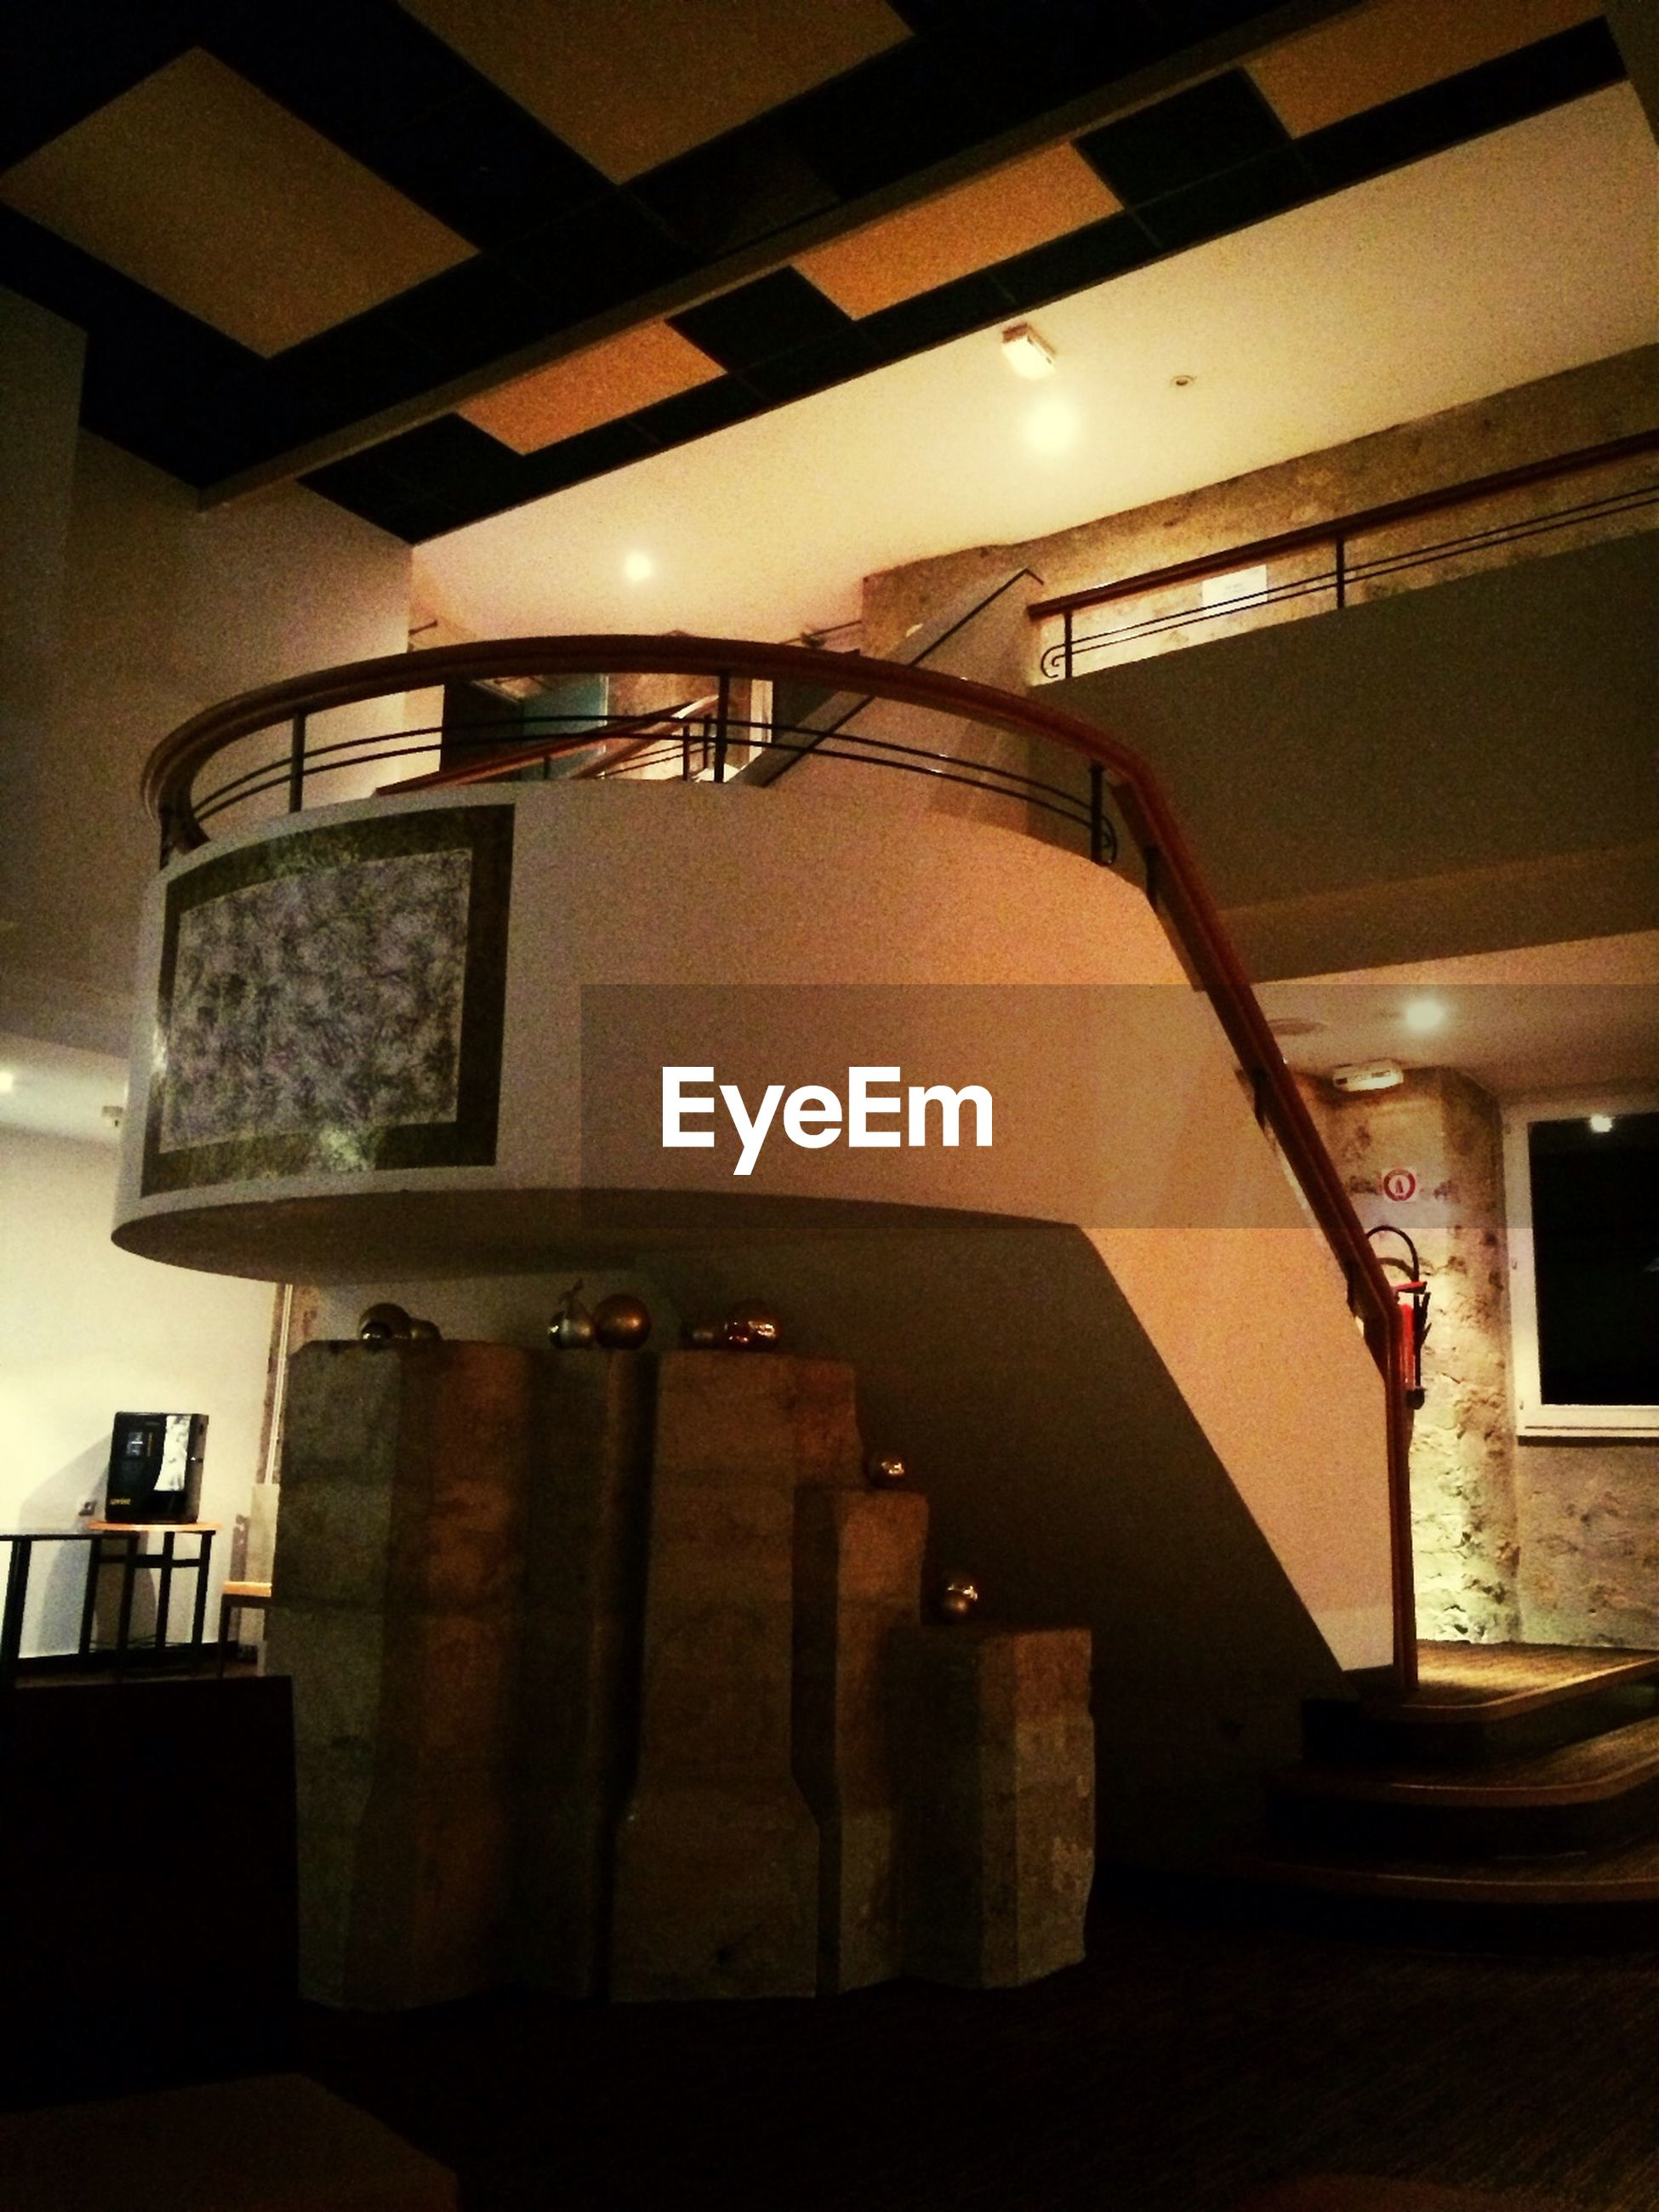 indoors, illuminated, architecture, built structure, home interior, lighting equipment, steps, staircase, wall - building feature, building, steps and staircases, no people, absence, interior, house, high angle view, door, empty, window, light - natural phenomenon